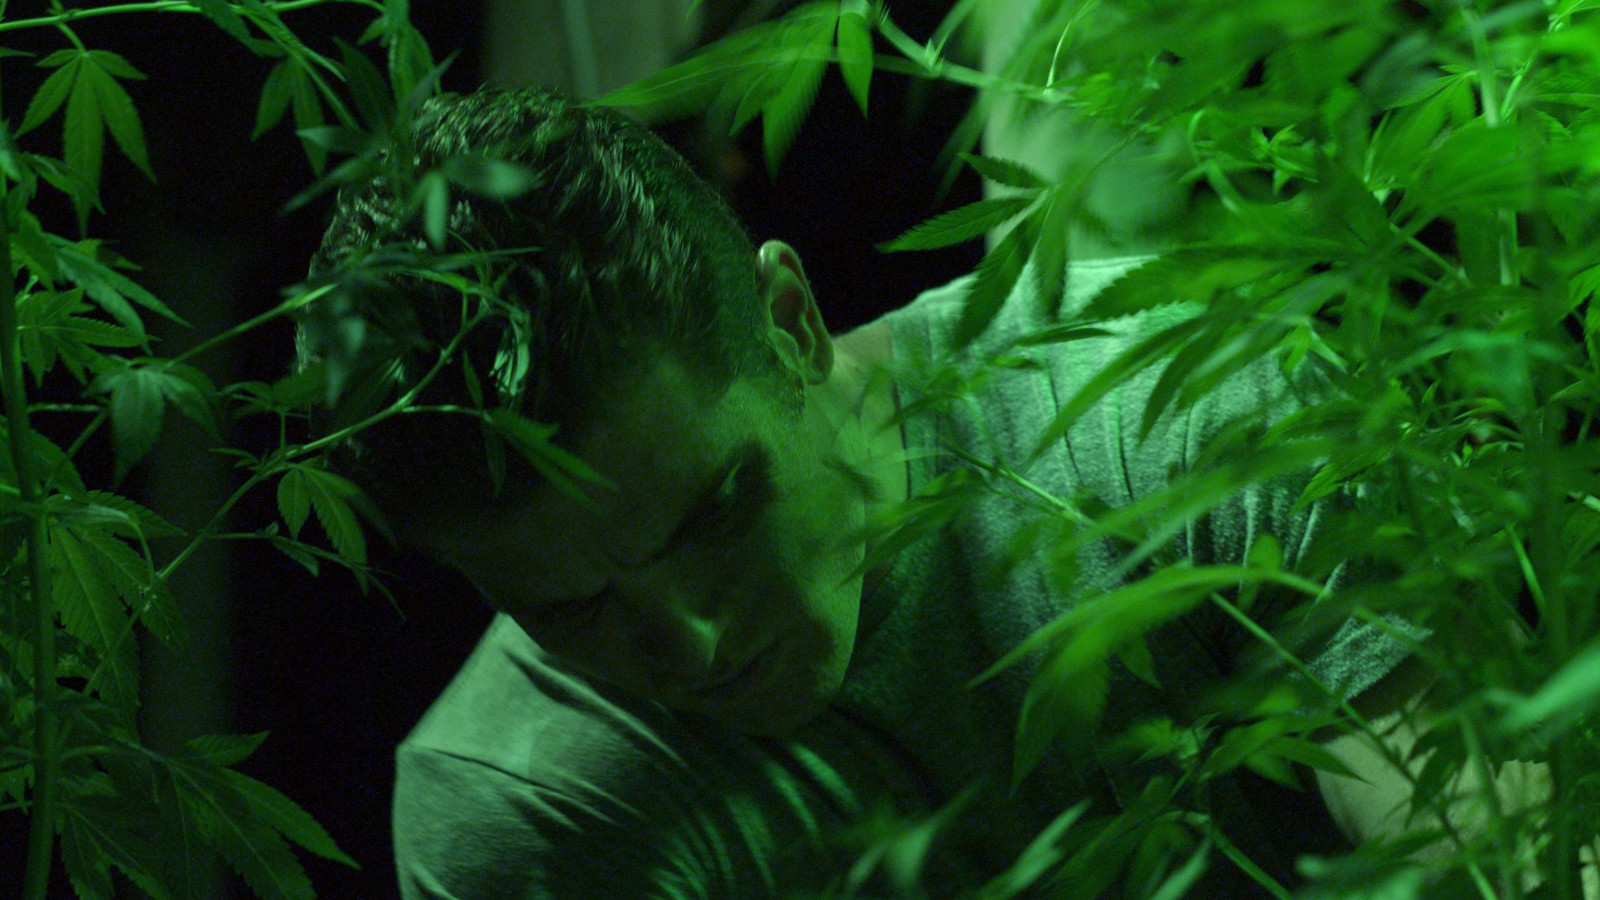 slippery charms of pot growing brothers in green is gold will